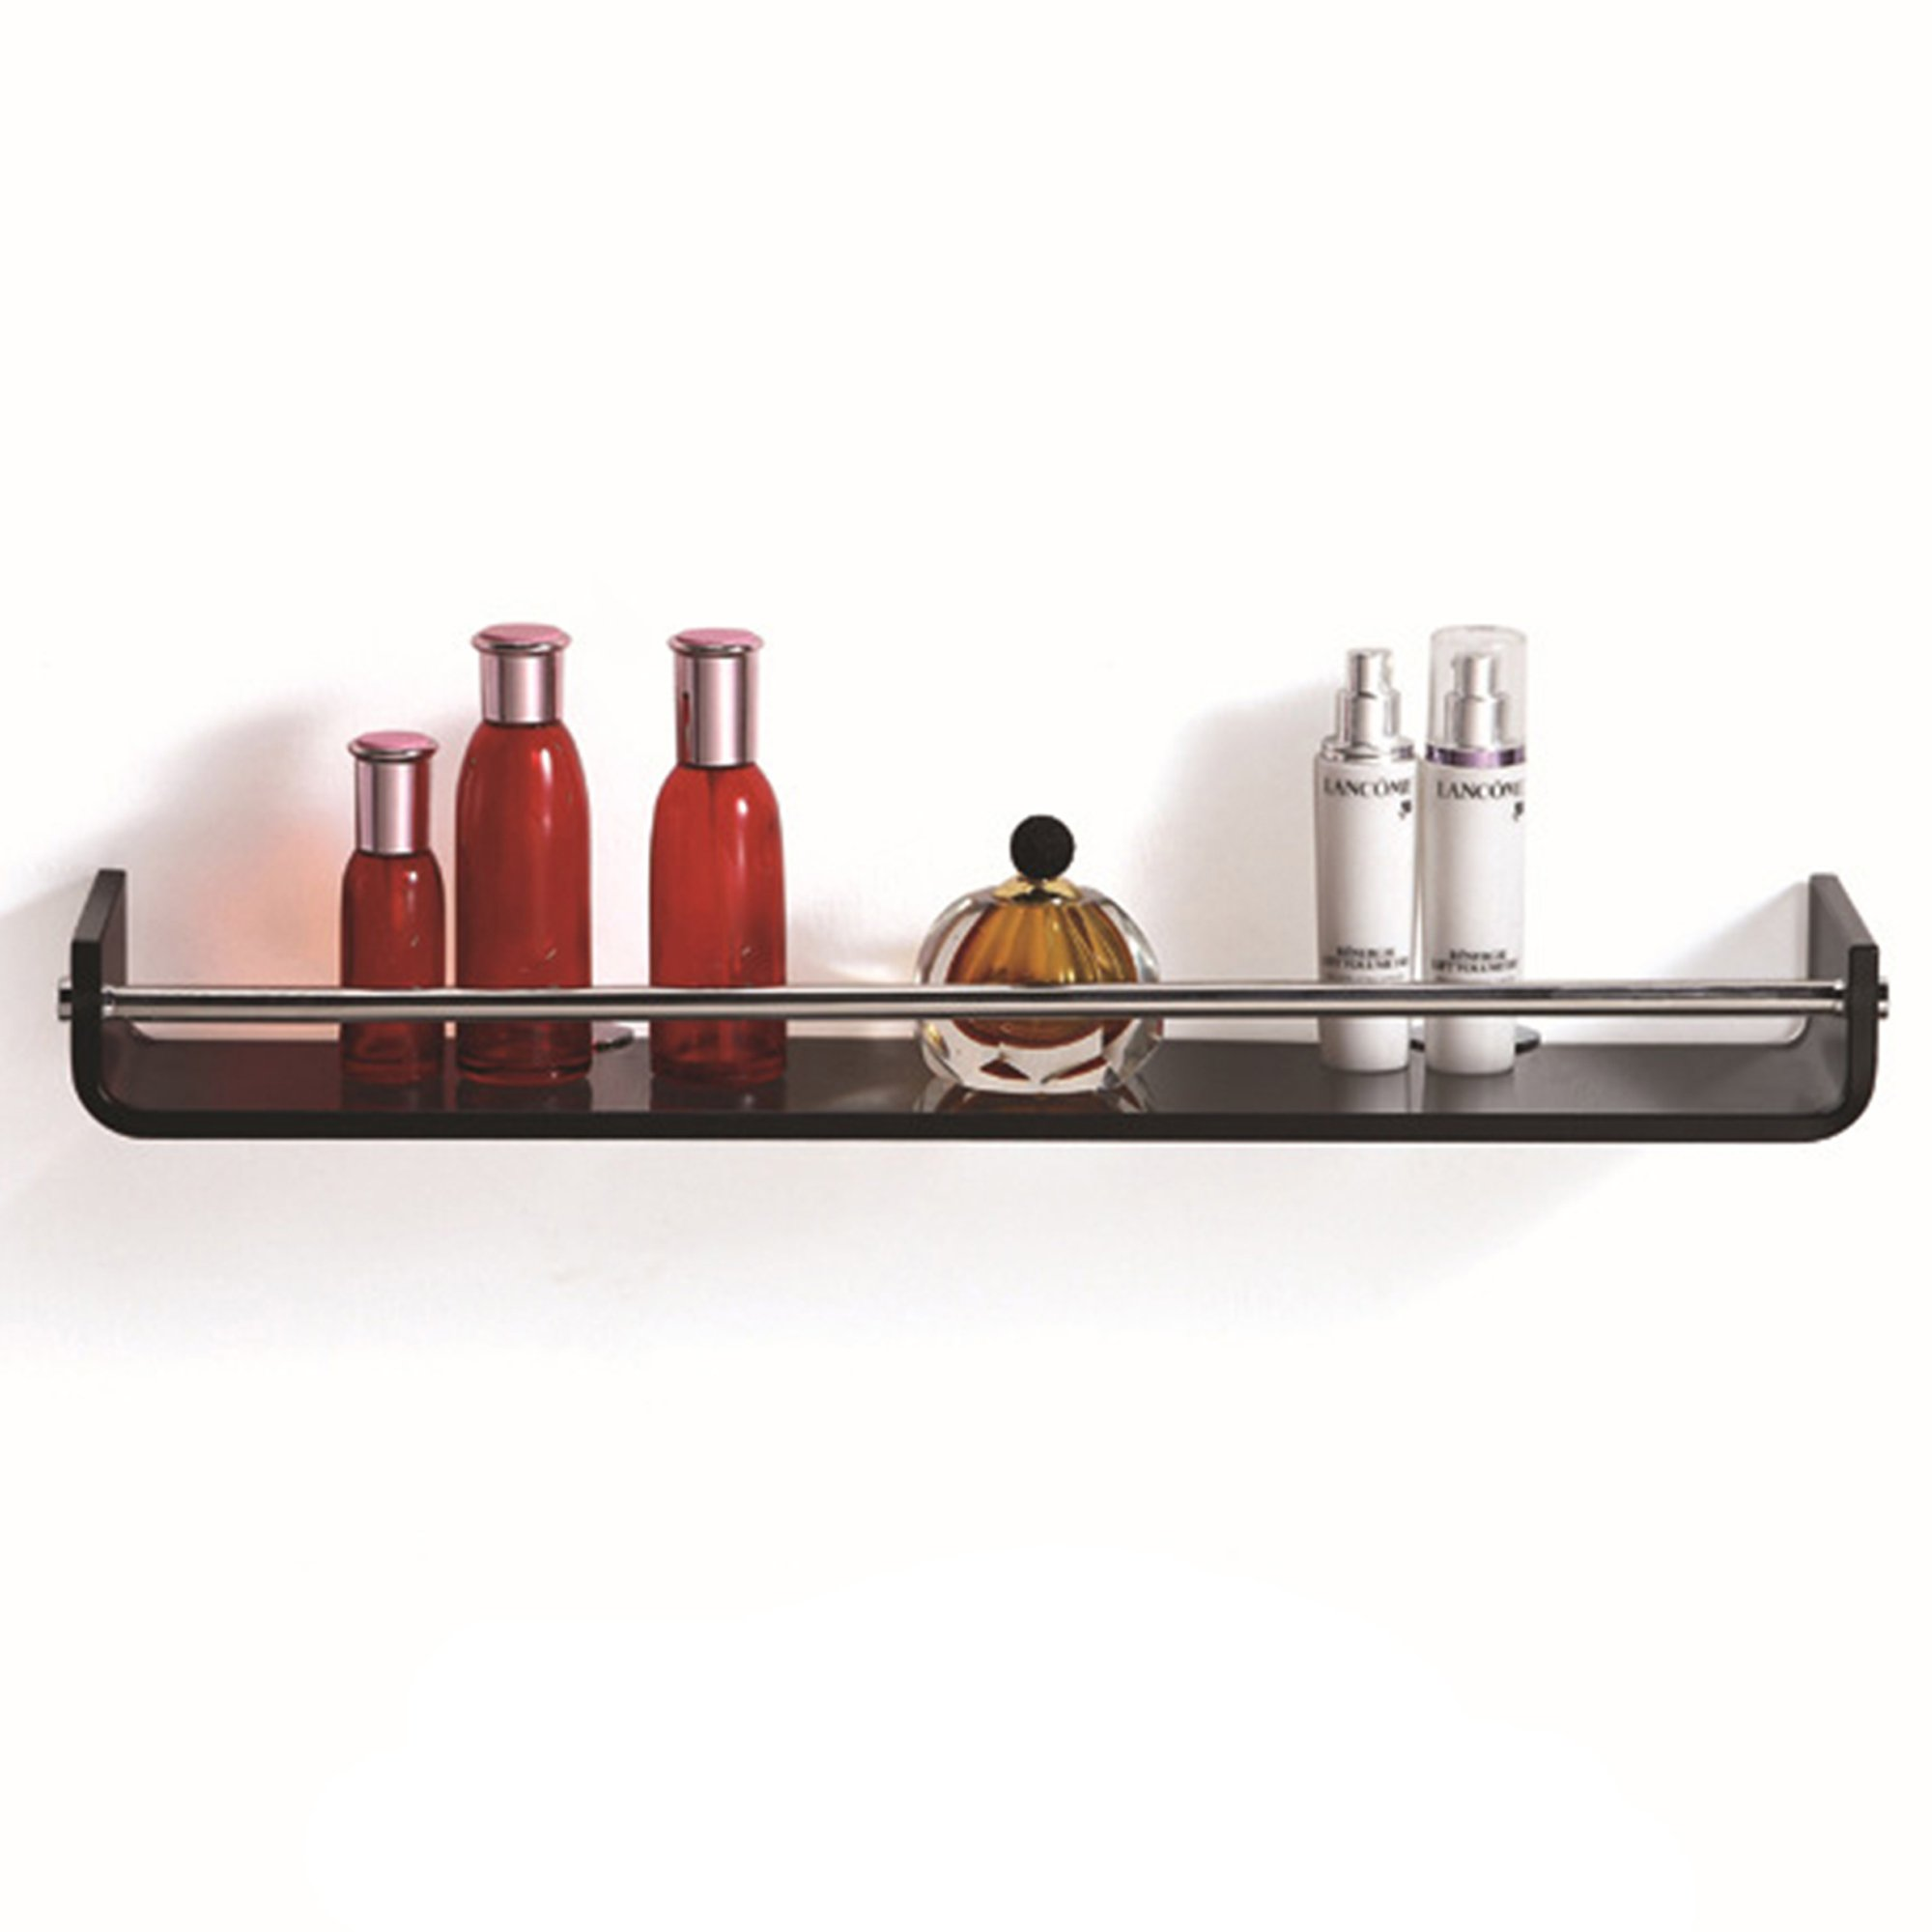 Fab Glass and Mirror FGM-L-V002 Midnight Veil Glass Wall Shelf, Black by Fab Glass and Mirror